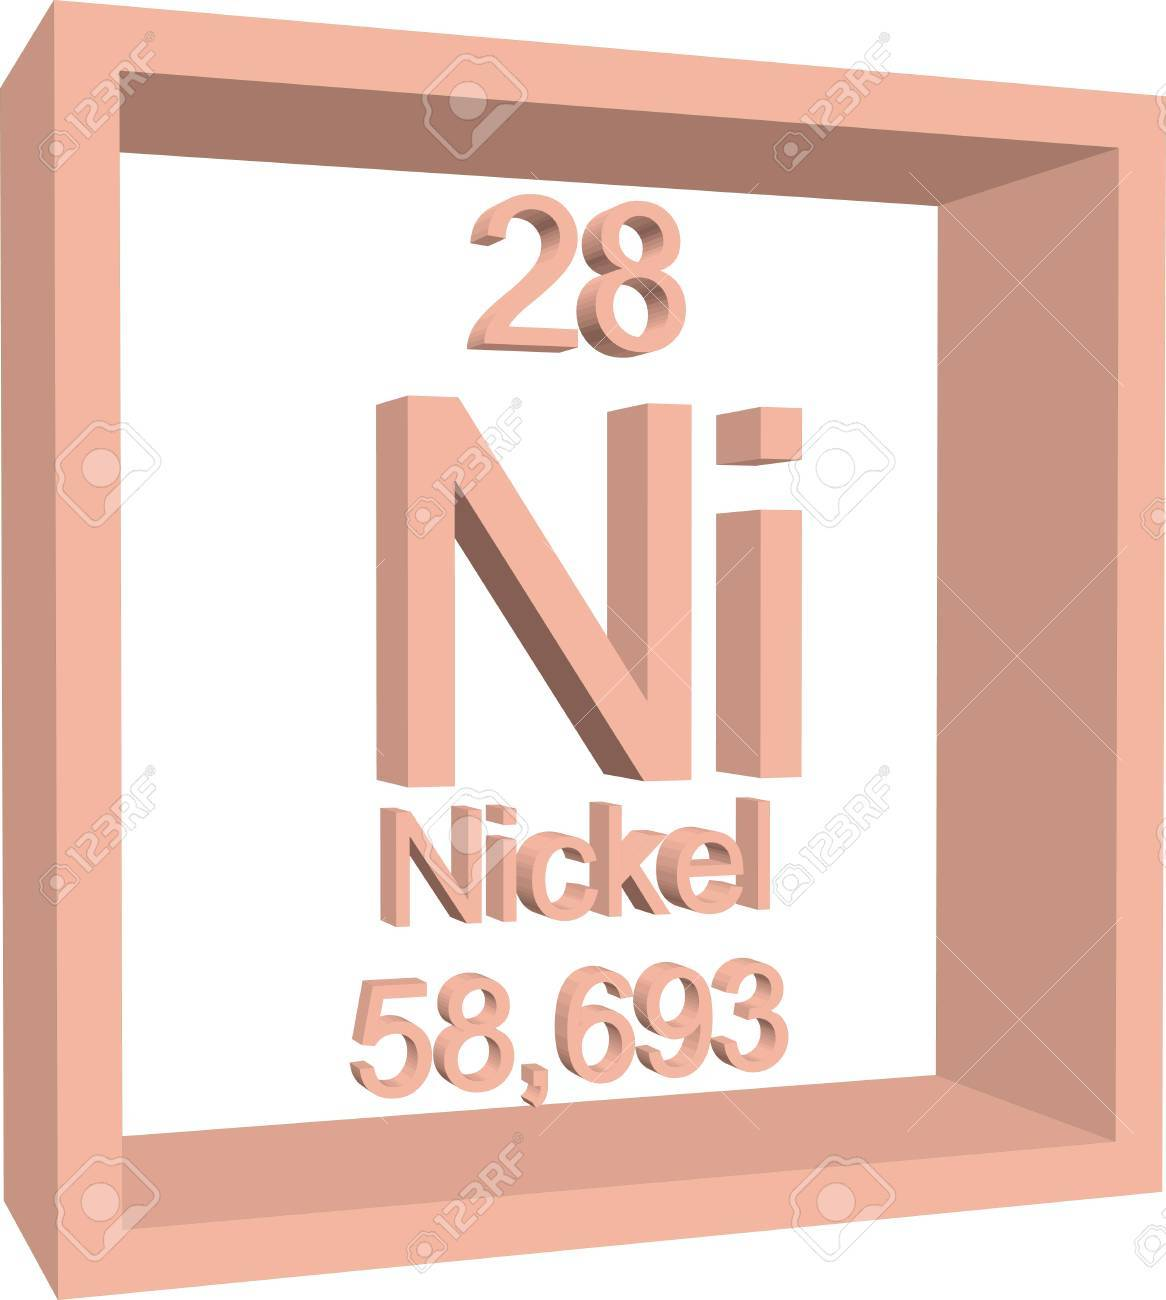 Periodic table of elements nickel royalty free cliparts vectors periodic table of elements nickel stock vector 57962862 urtaz Image collections